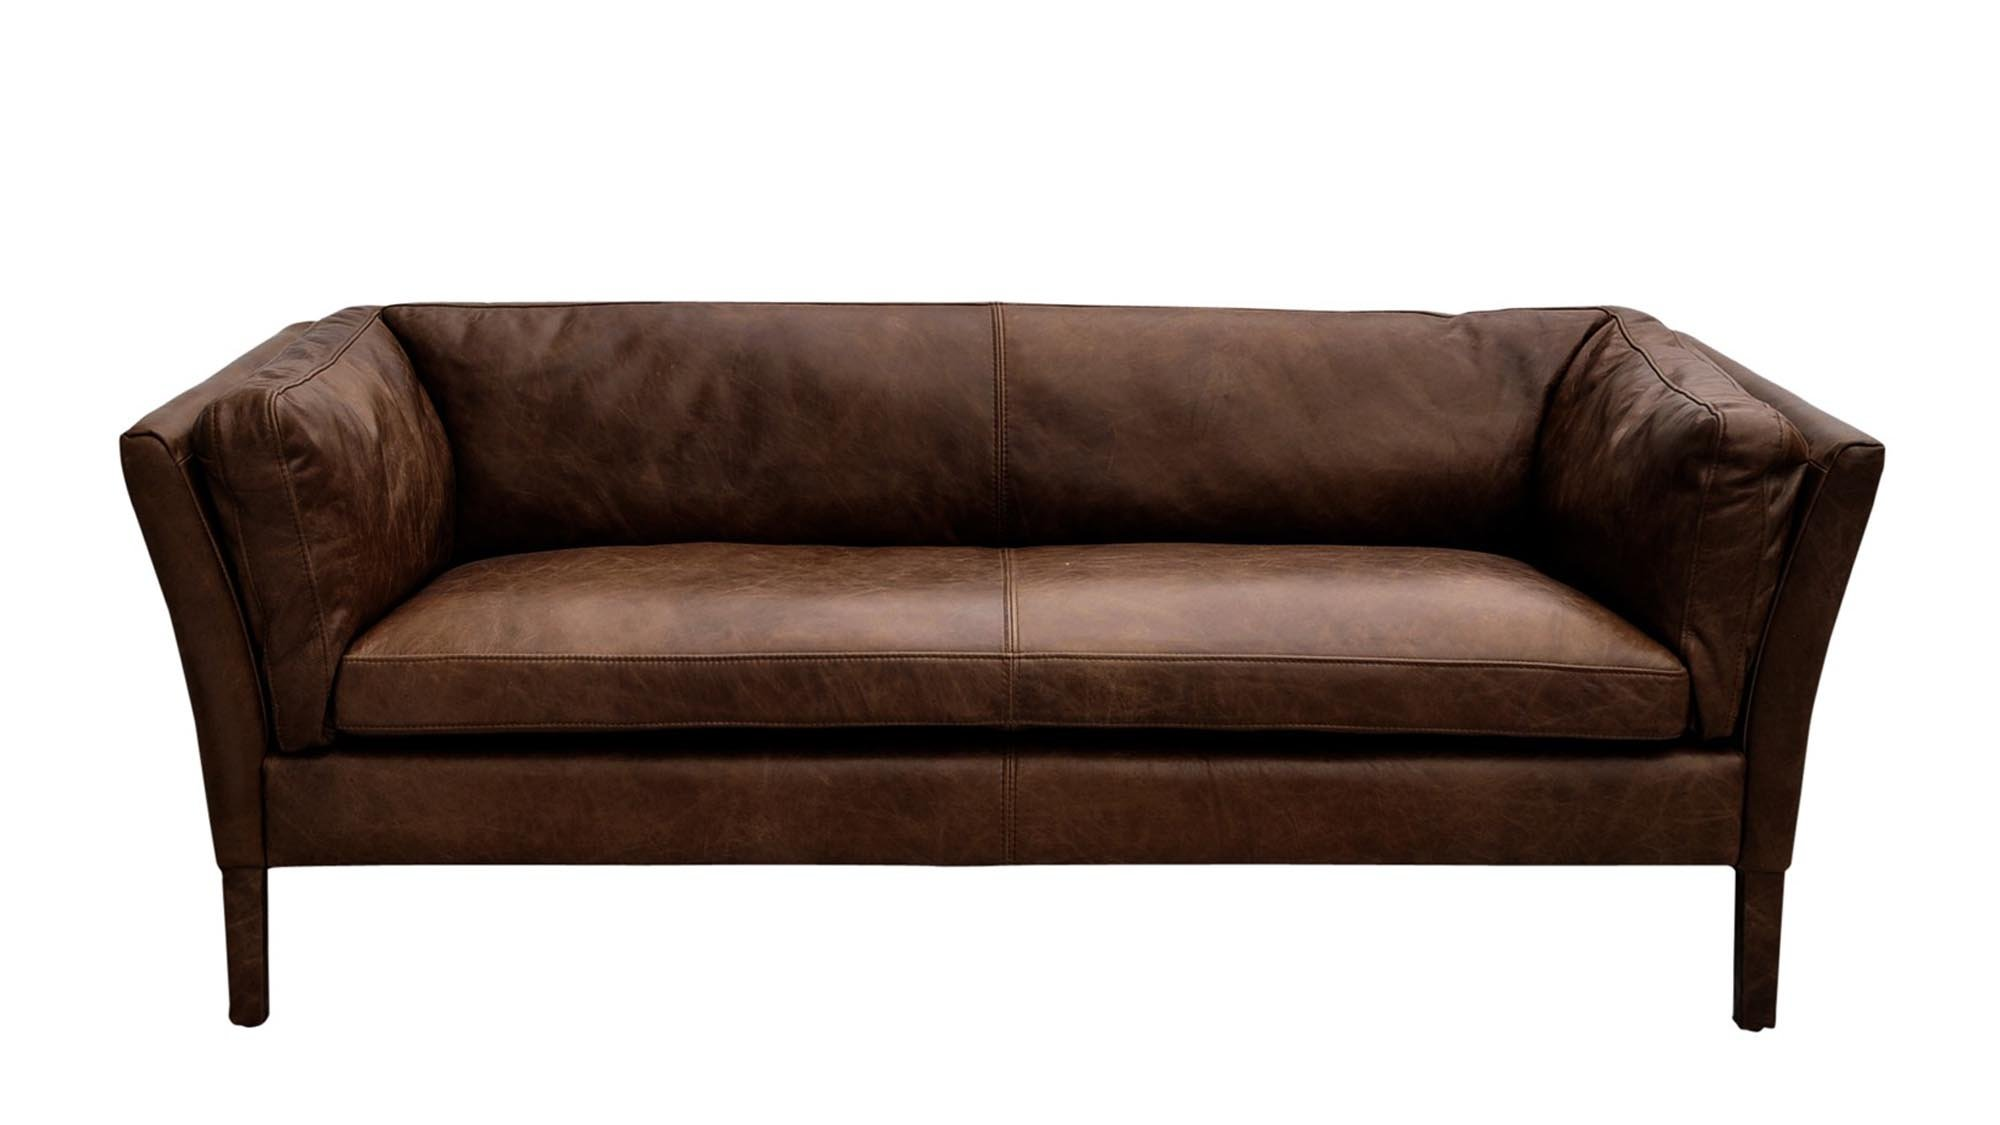 Best sofa 2018 find the perfect sofa for your living room for Affordable furniture uk